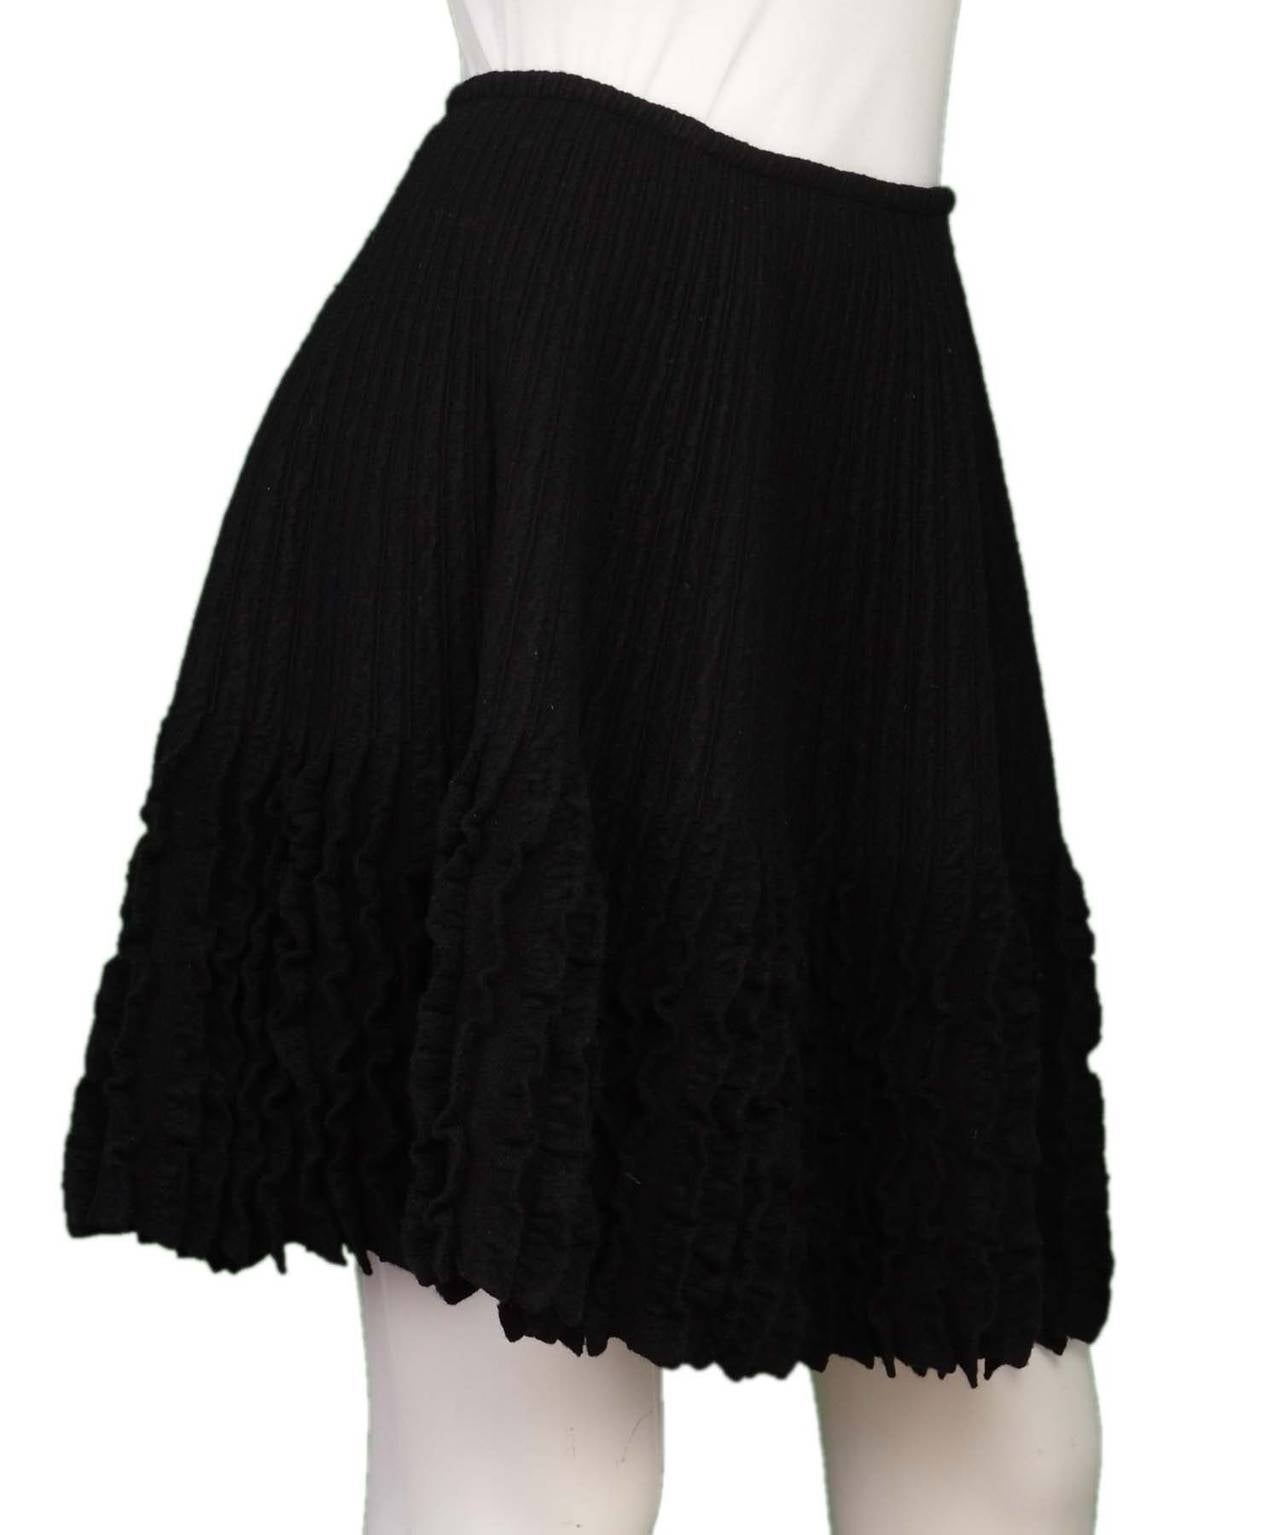 Find great deals on eBay for black wool pencil skirt. Shop with confidence.